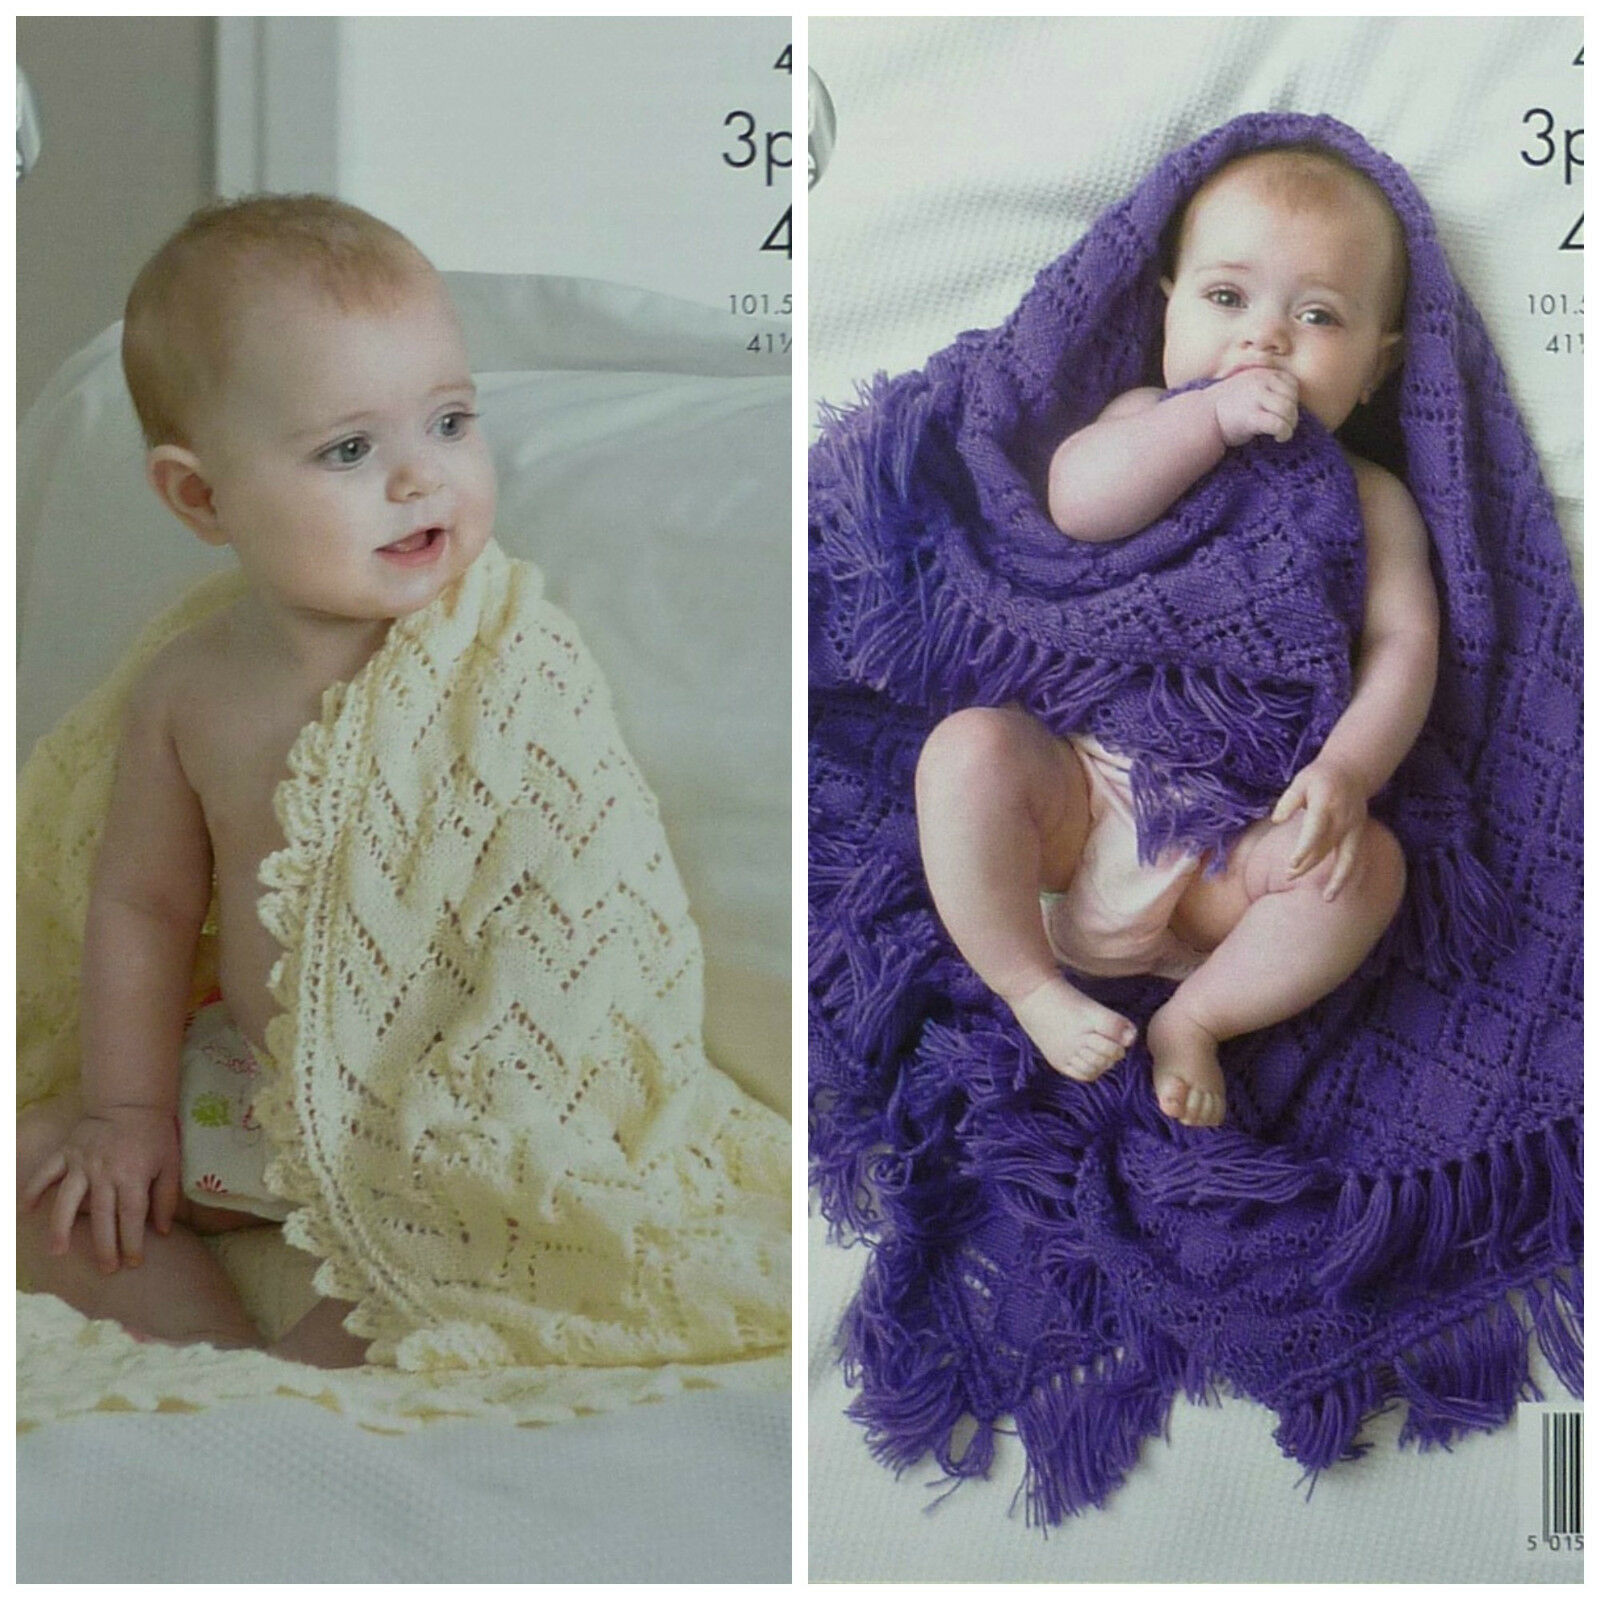 BABY KNITTING PATTERN Easy Lace Baby Blanket/Shawls 3ply & 4ply King ...